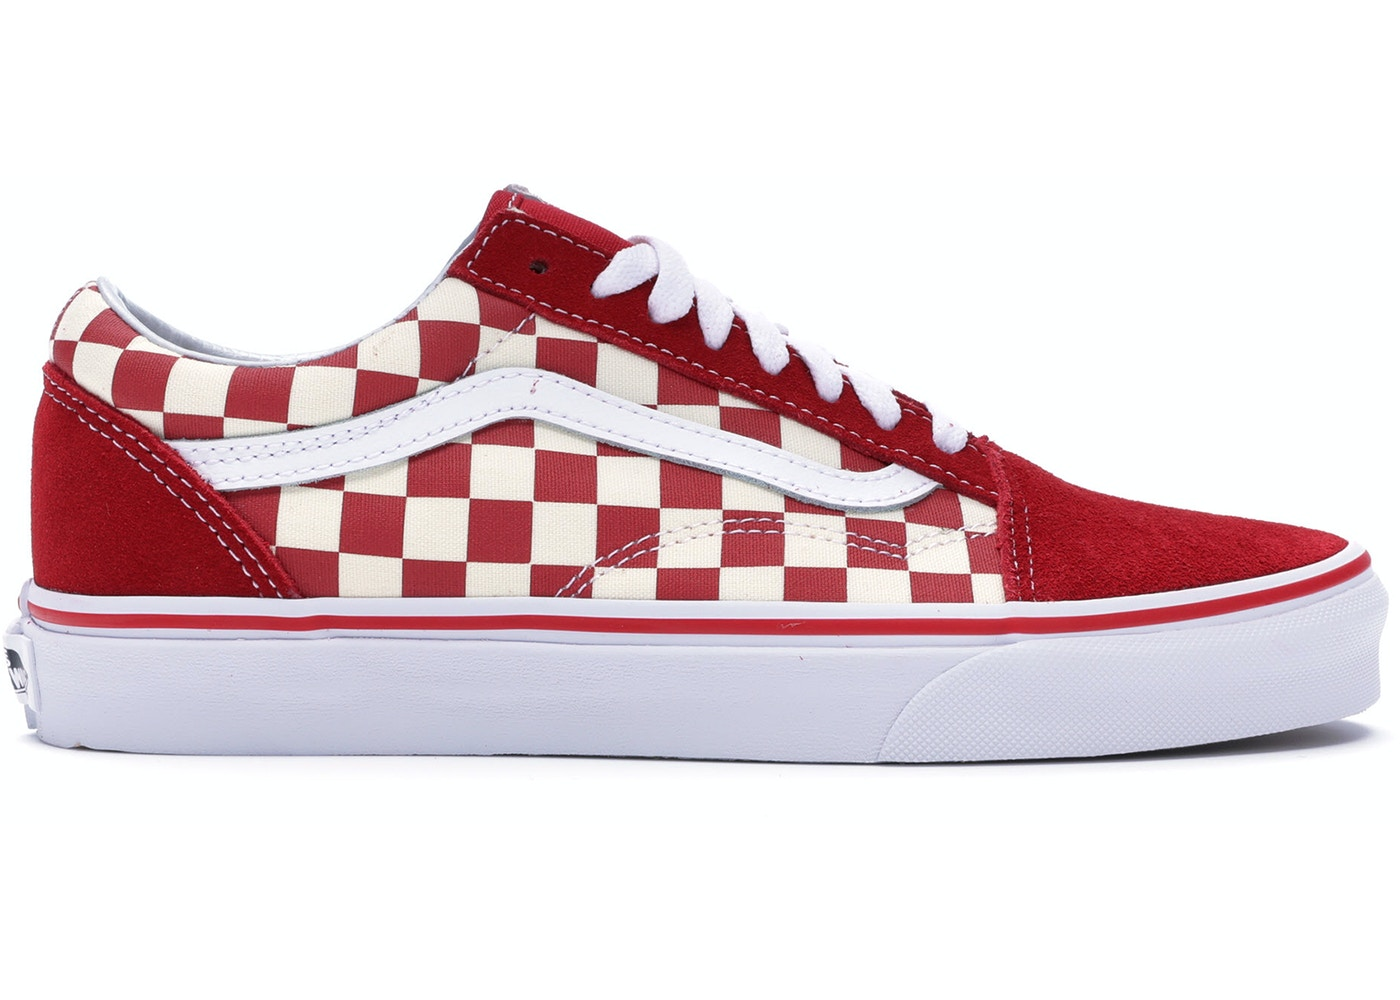 Vans Old Skool Checkerboard Racing Red Vn0a38g1p0t High quality red vans gifts and merchandise. vans old skool checkerboard racing red